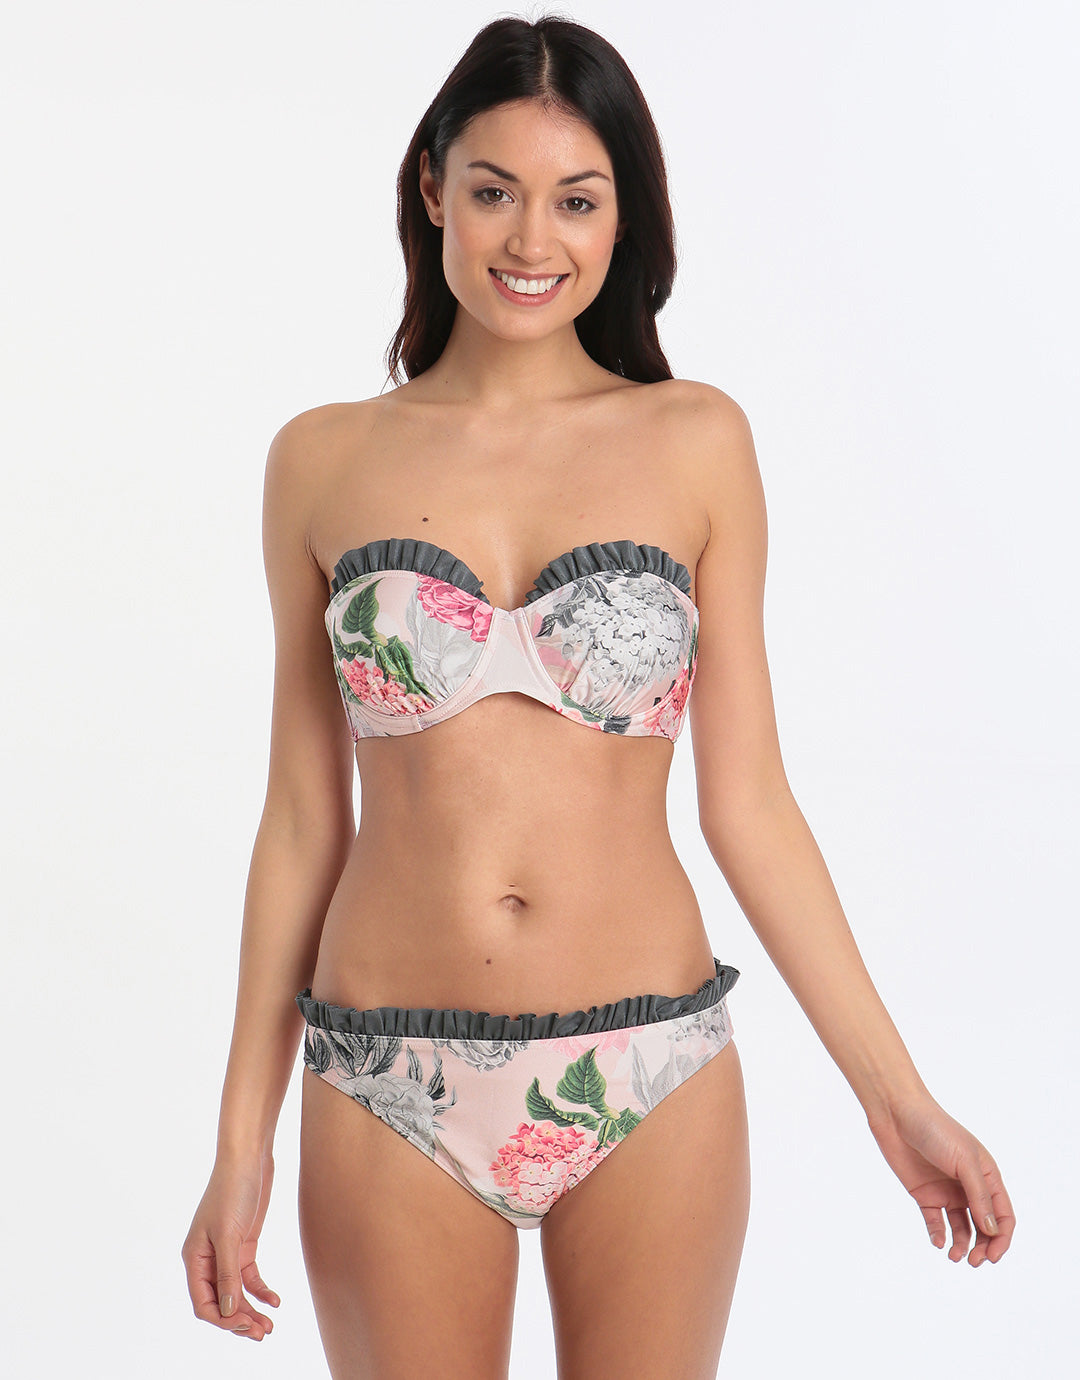 7410ccb032e314 ... Ted Baker Palace Gardens Moulded Bikini Top - Grey ...